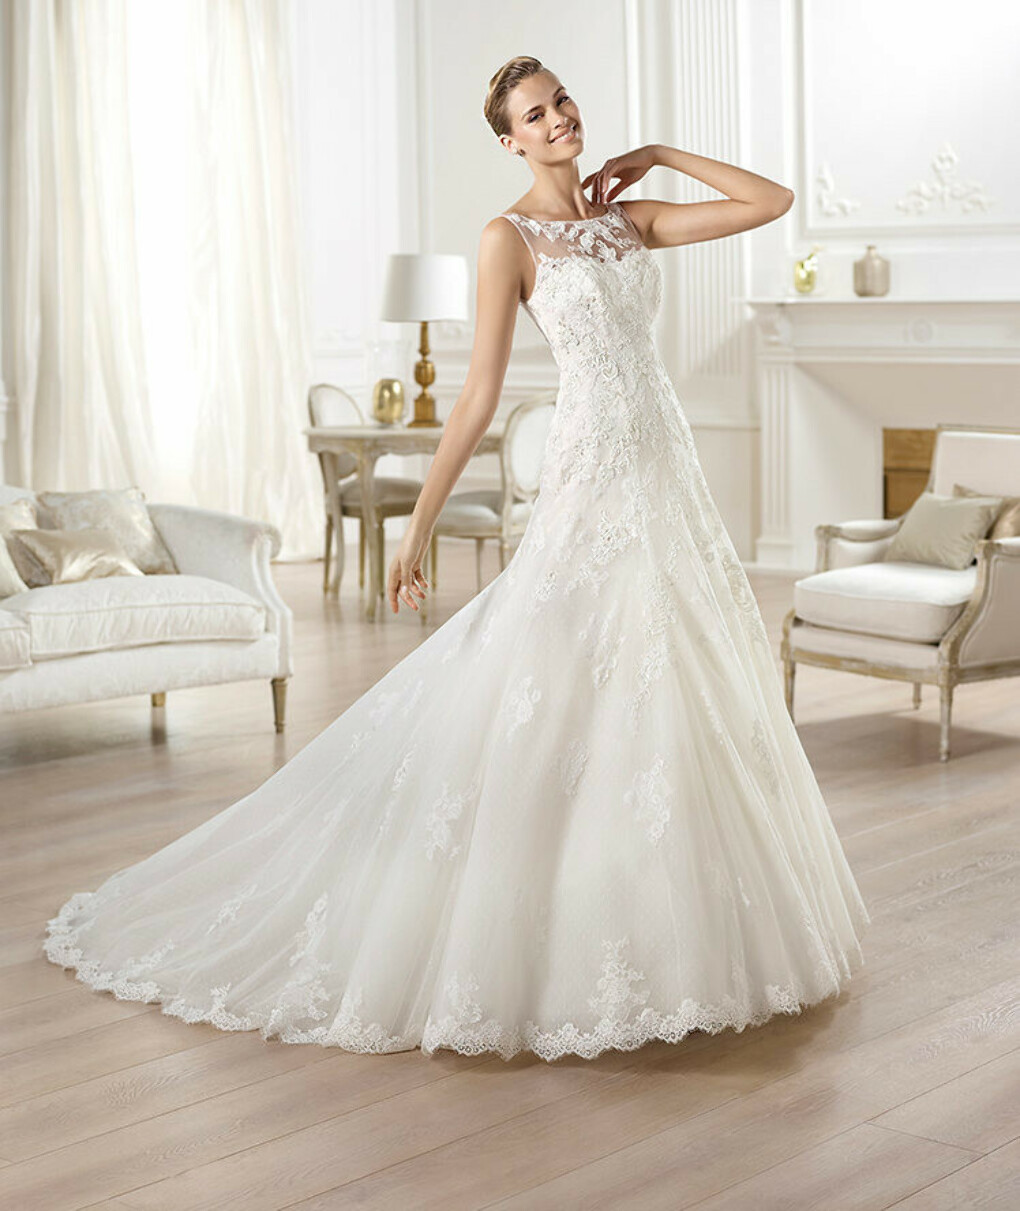 Odariz wedding dress by Pronovias